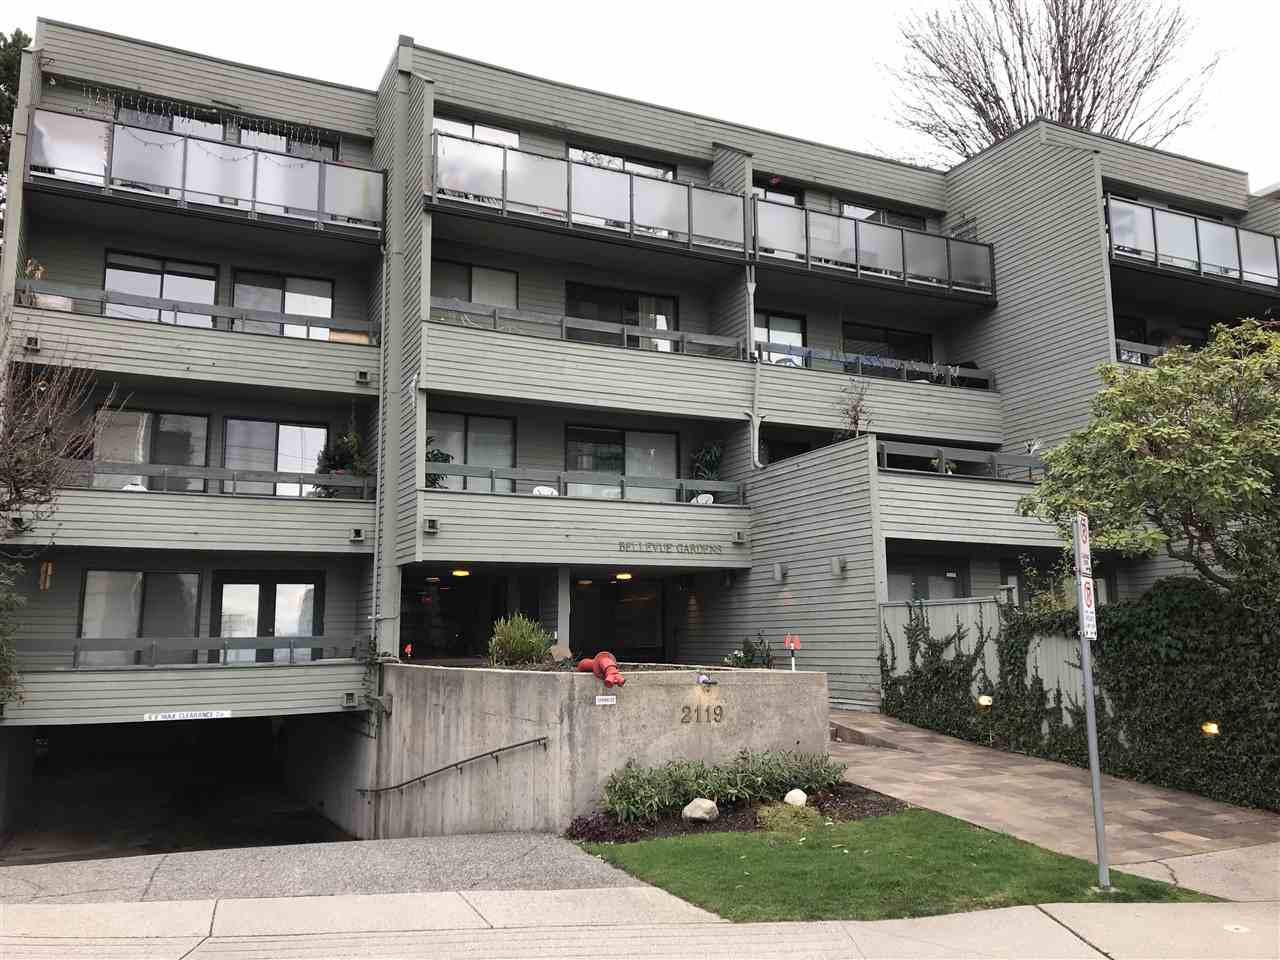 308 2119 BELLEVUE AVENUE - Dundarave Apartment/Condo for sale, 1 Bedroom (R2427230) - #1